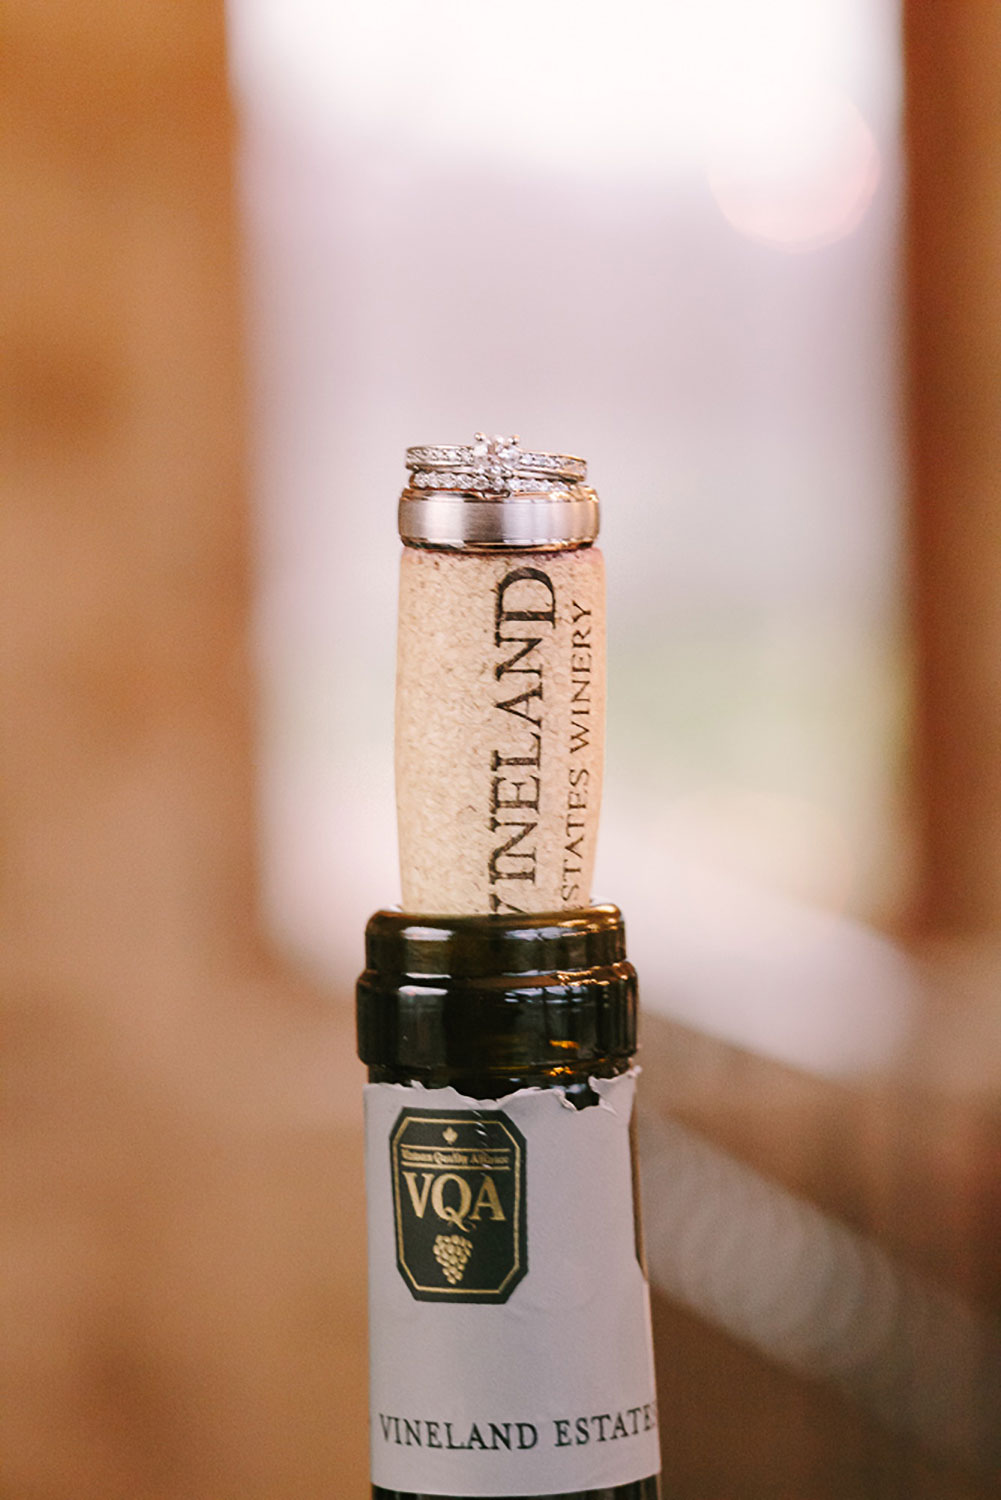 Vineland-Estates-Wedding-Vineyard-Bride-Photo-By-Tamara-Lockwood-Photography-030.jpg